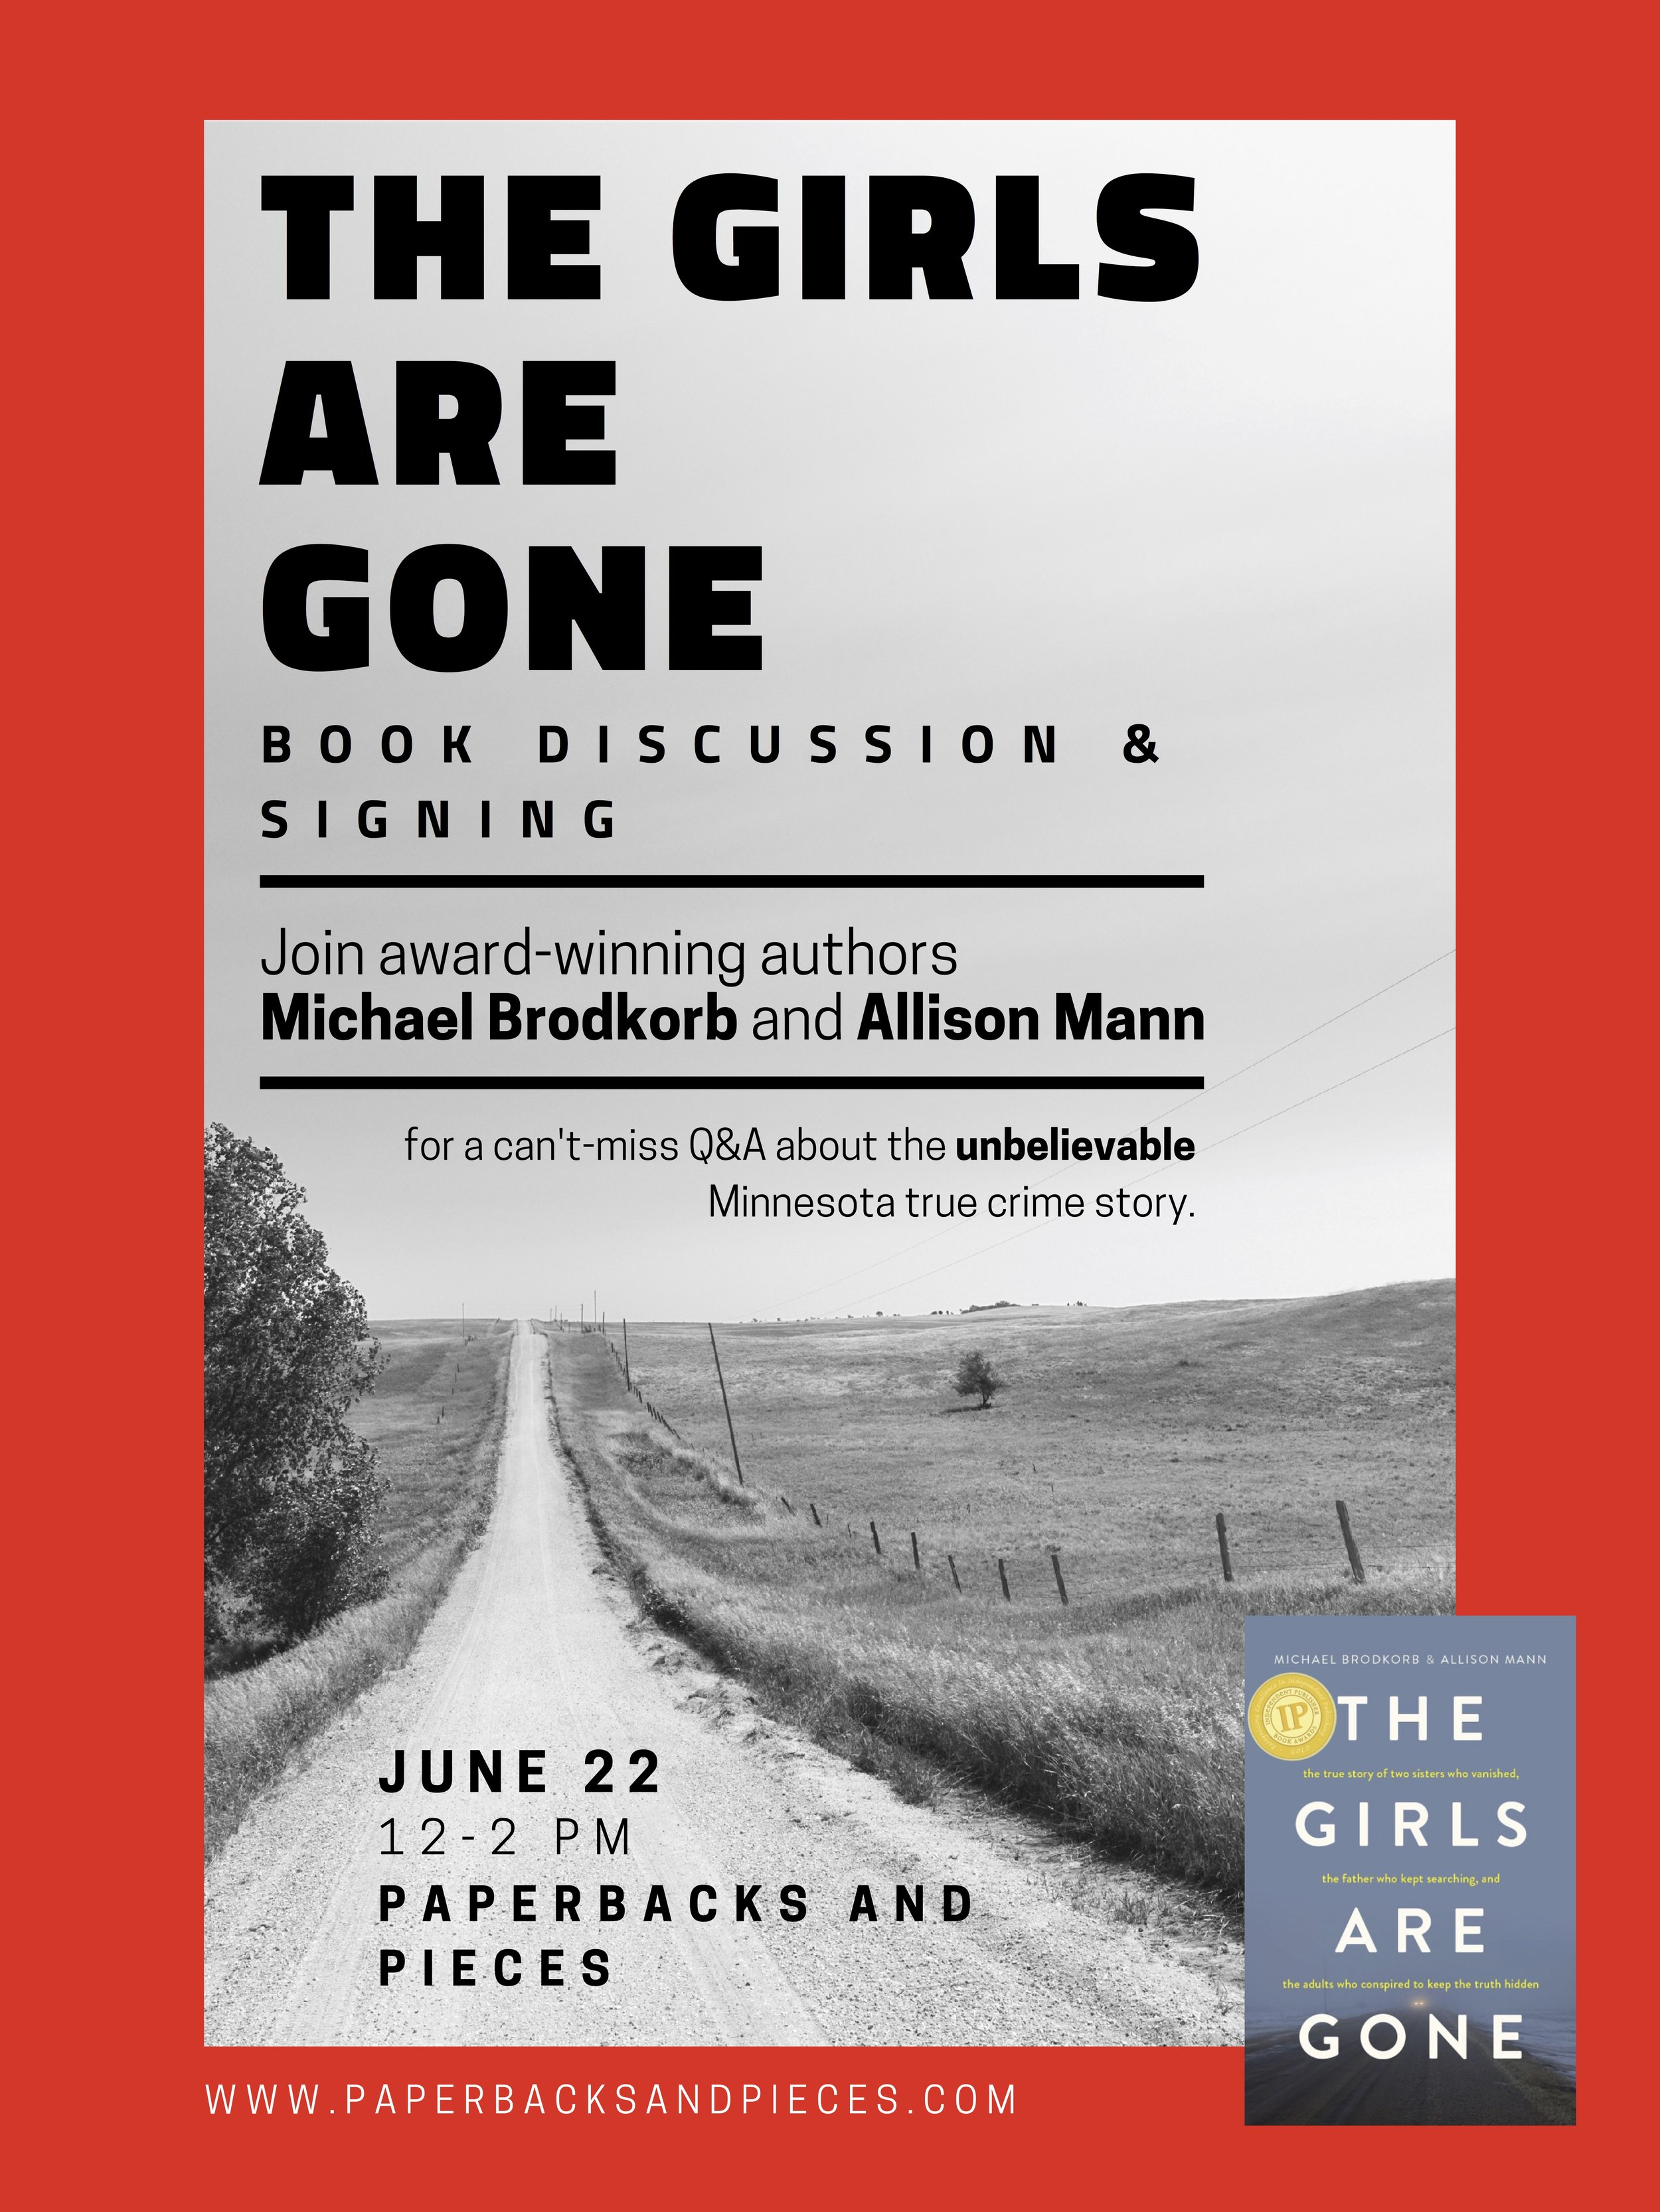 the girls are gone event poster.jpg